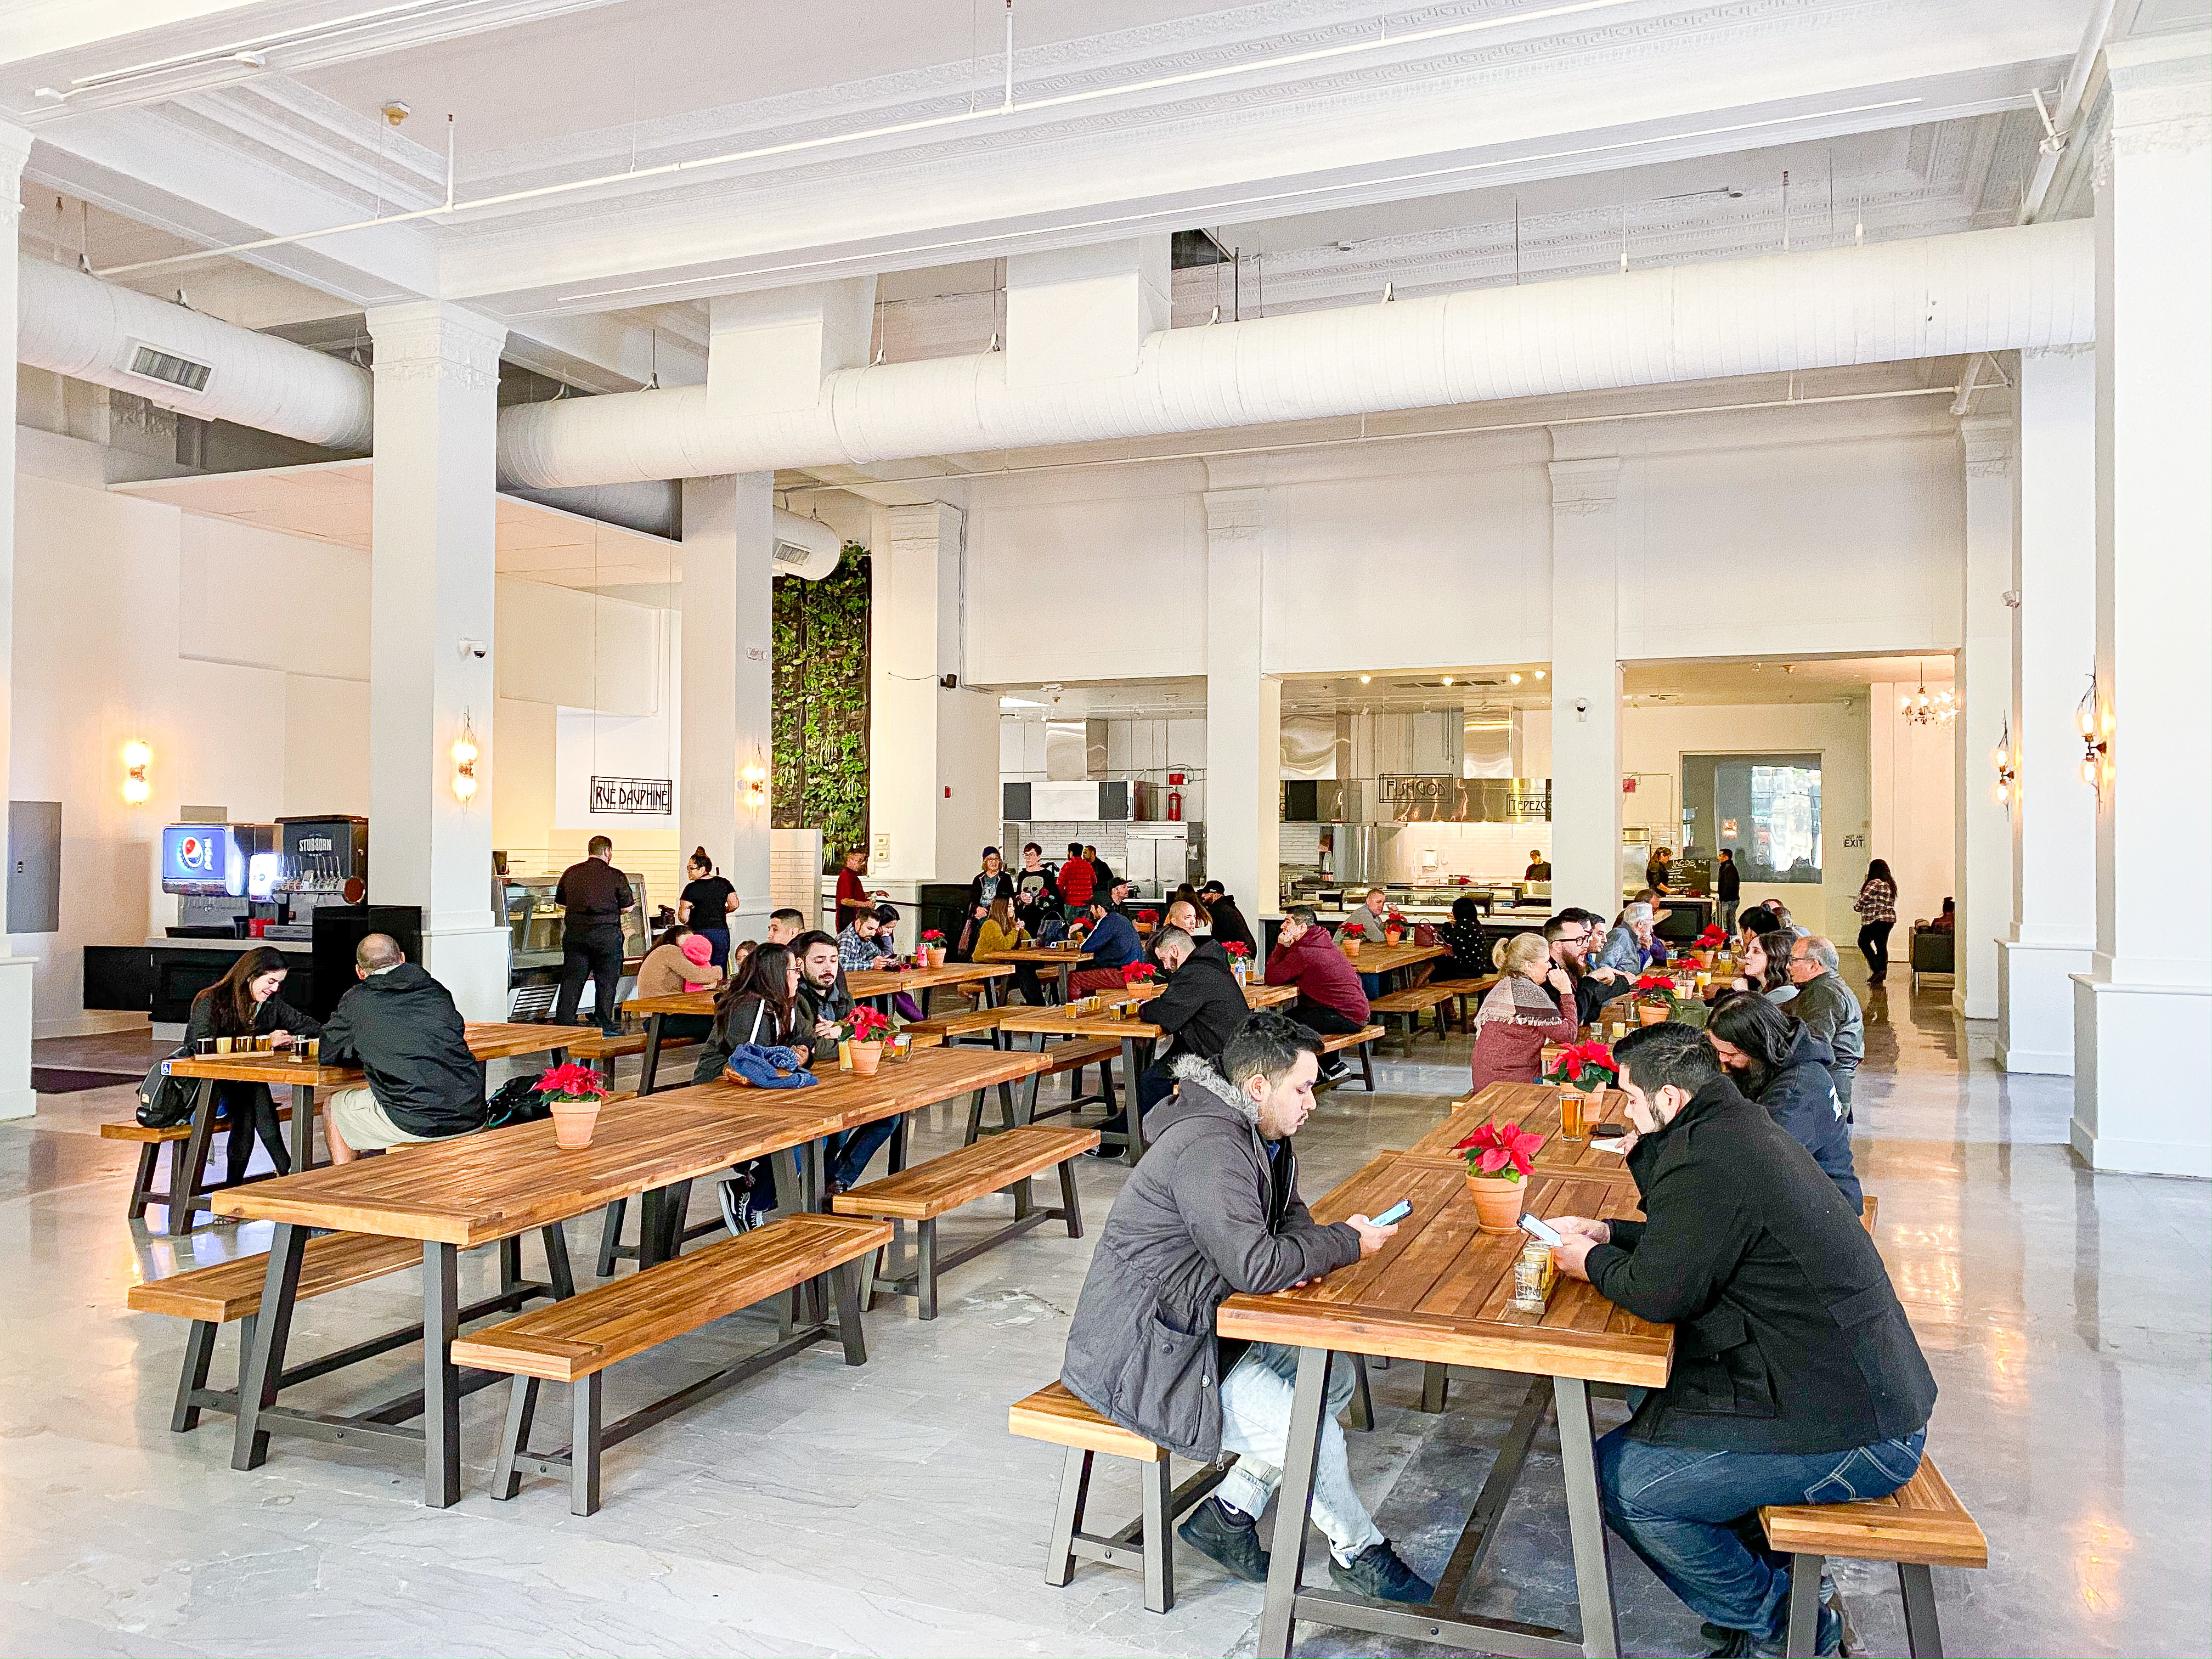 A bunch of diners eat at long communal tables inside a tall building.